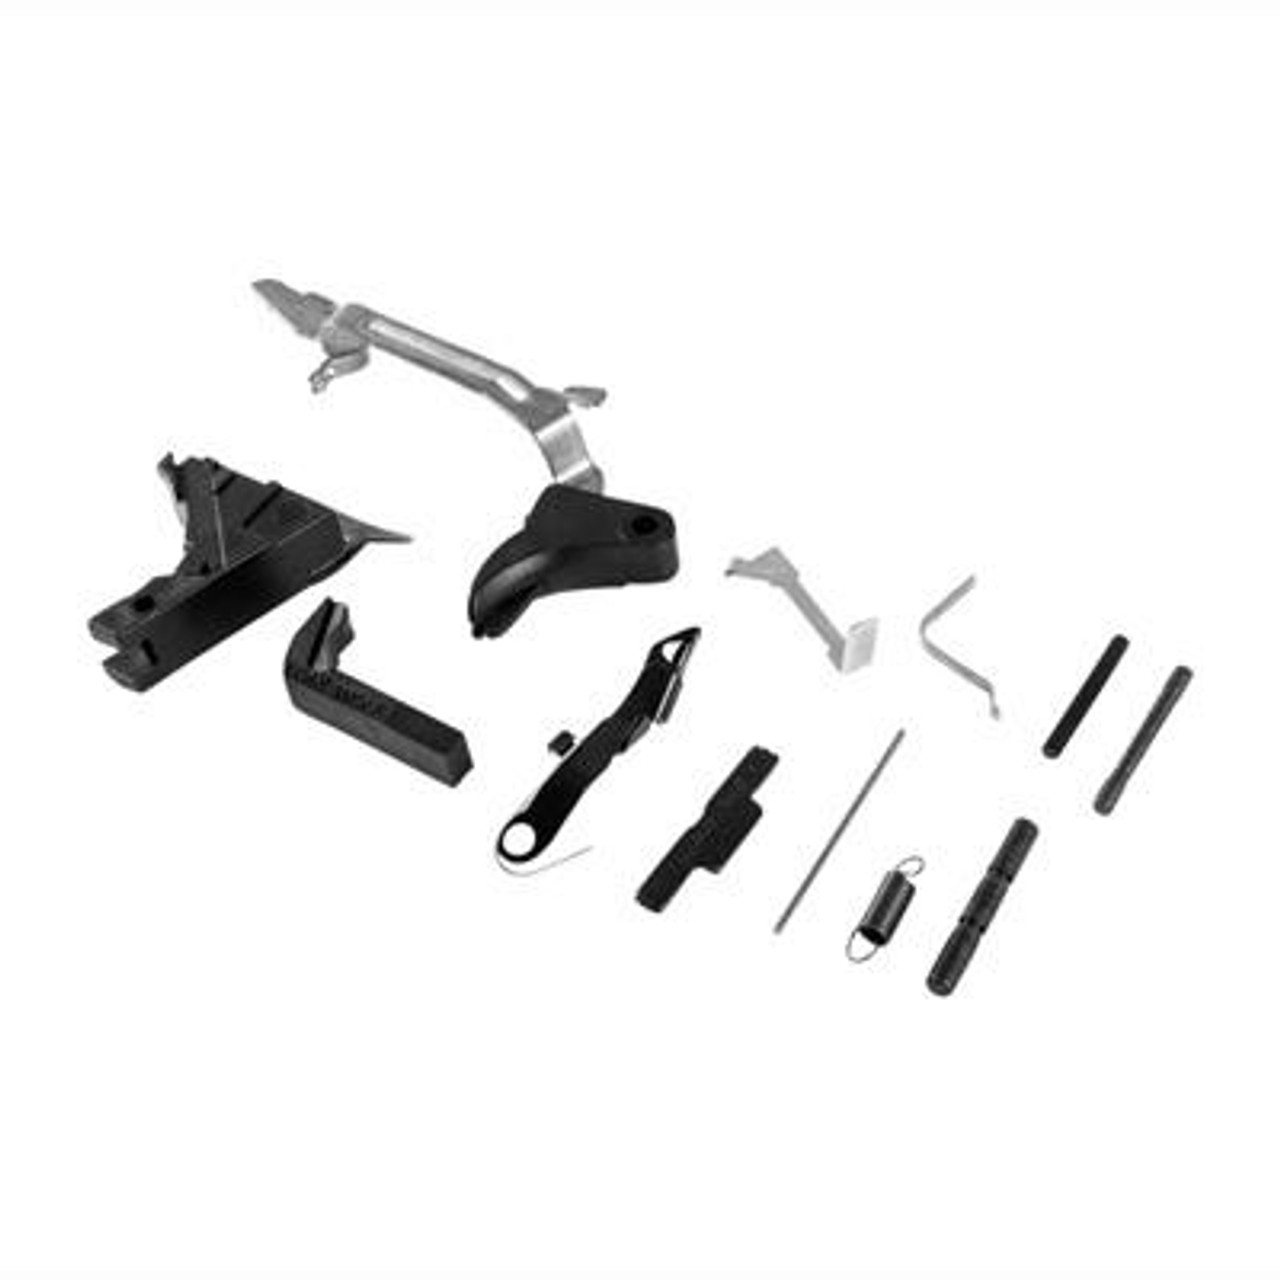 Lone Wolf Glock Spectre Lower Parts Kit with Trigger (Compact)